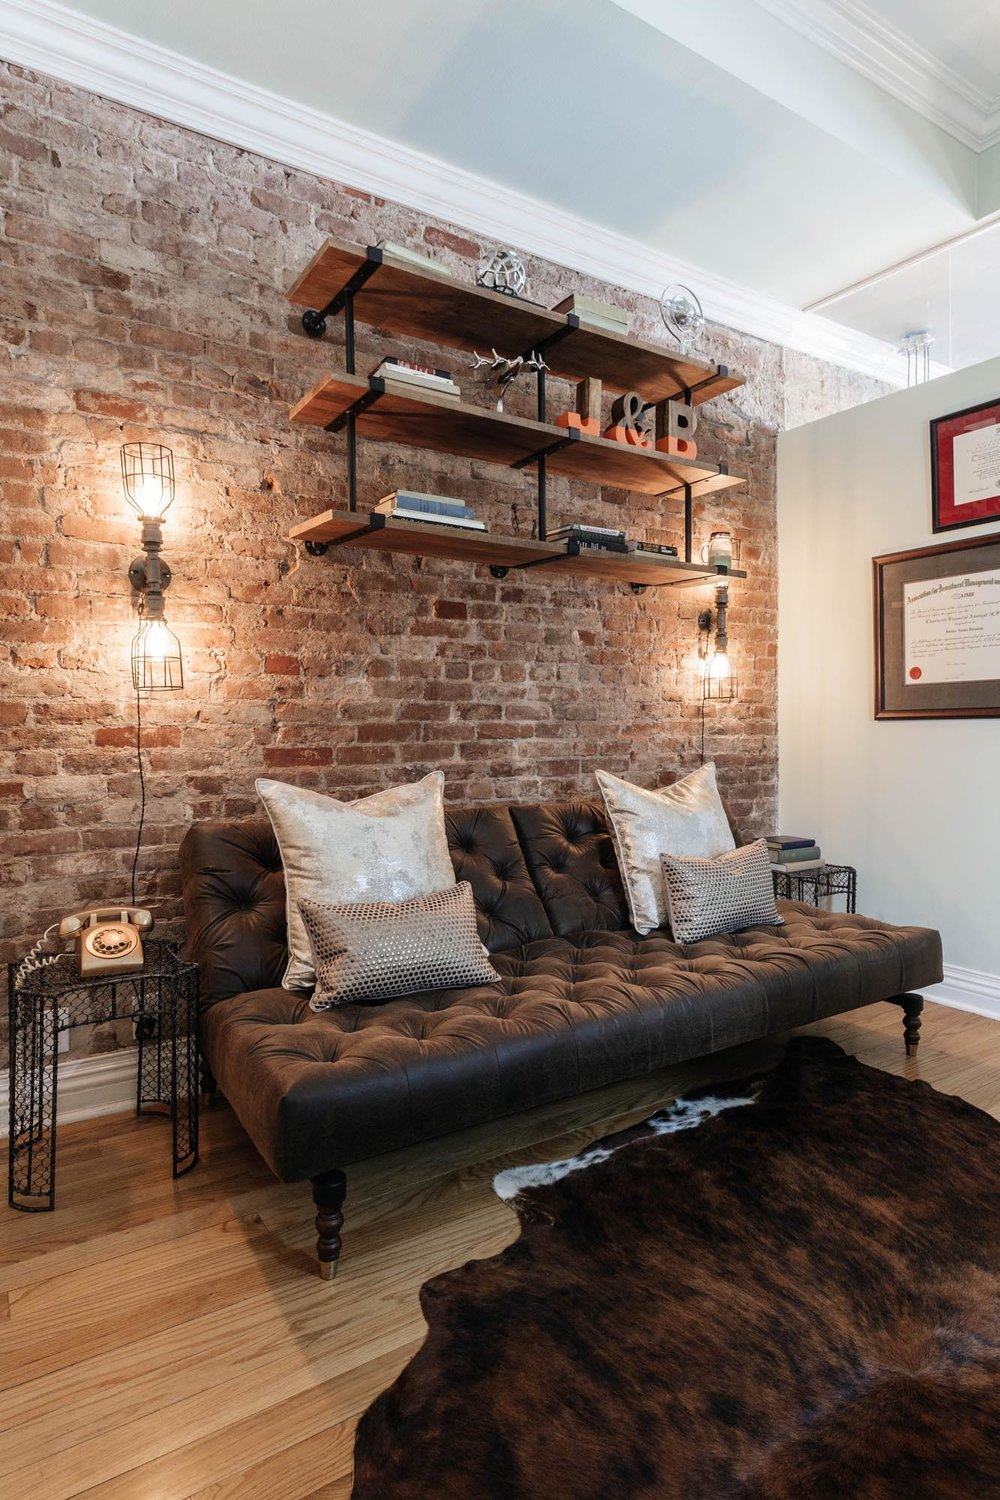 Vintage style sitting area with futon and pillows